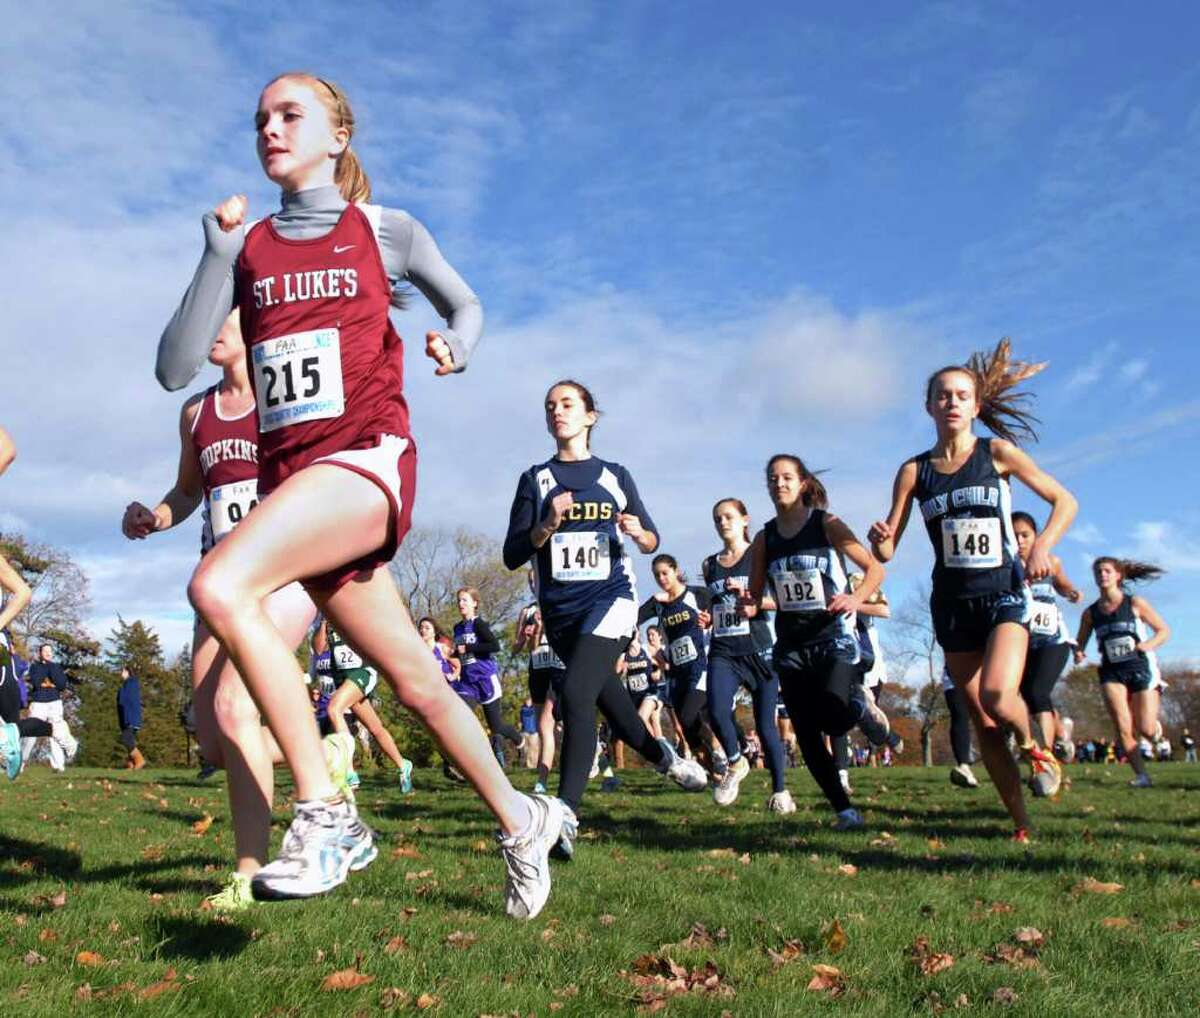 Caroline Hopkins of St. Lukes School, # 215, competes in the FAA Cross Country Championships at Waveny Park, New Canaan, Tuesday afternoon, Nov. 9th, 2010. Hopkins came in 20th with a time of 22:31.